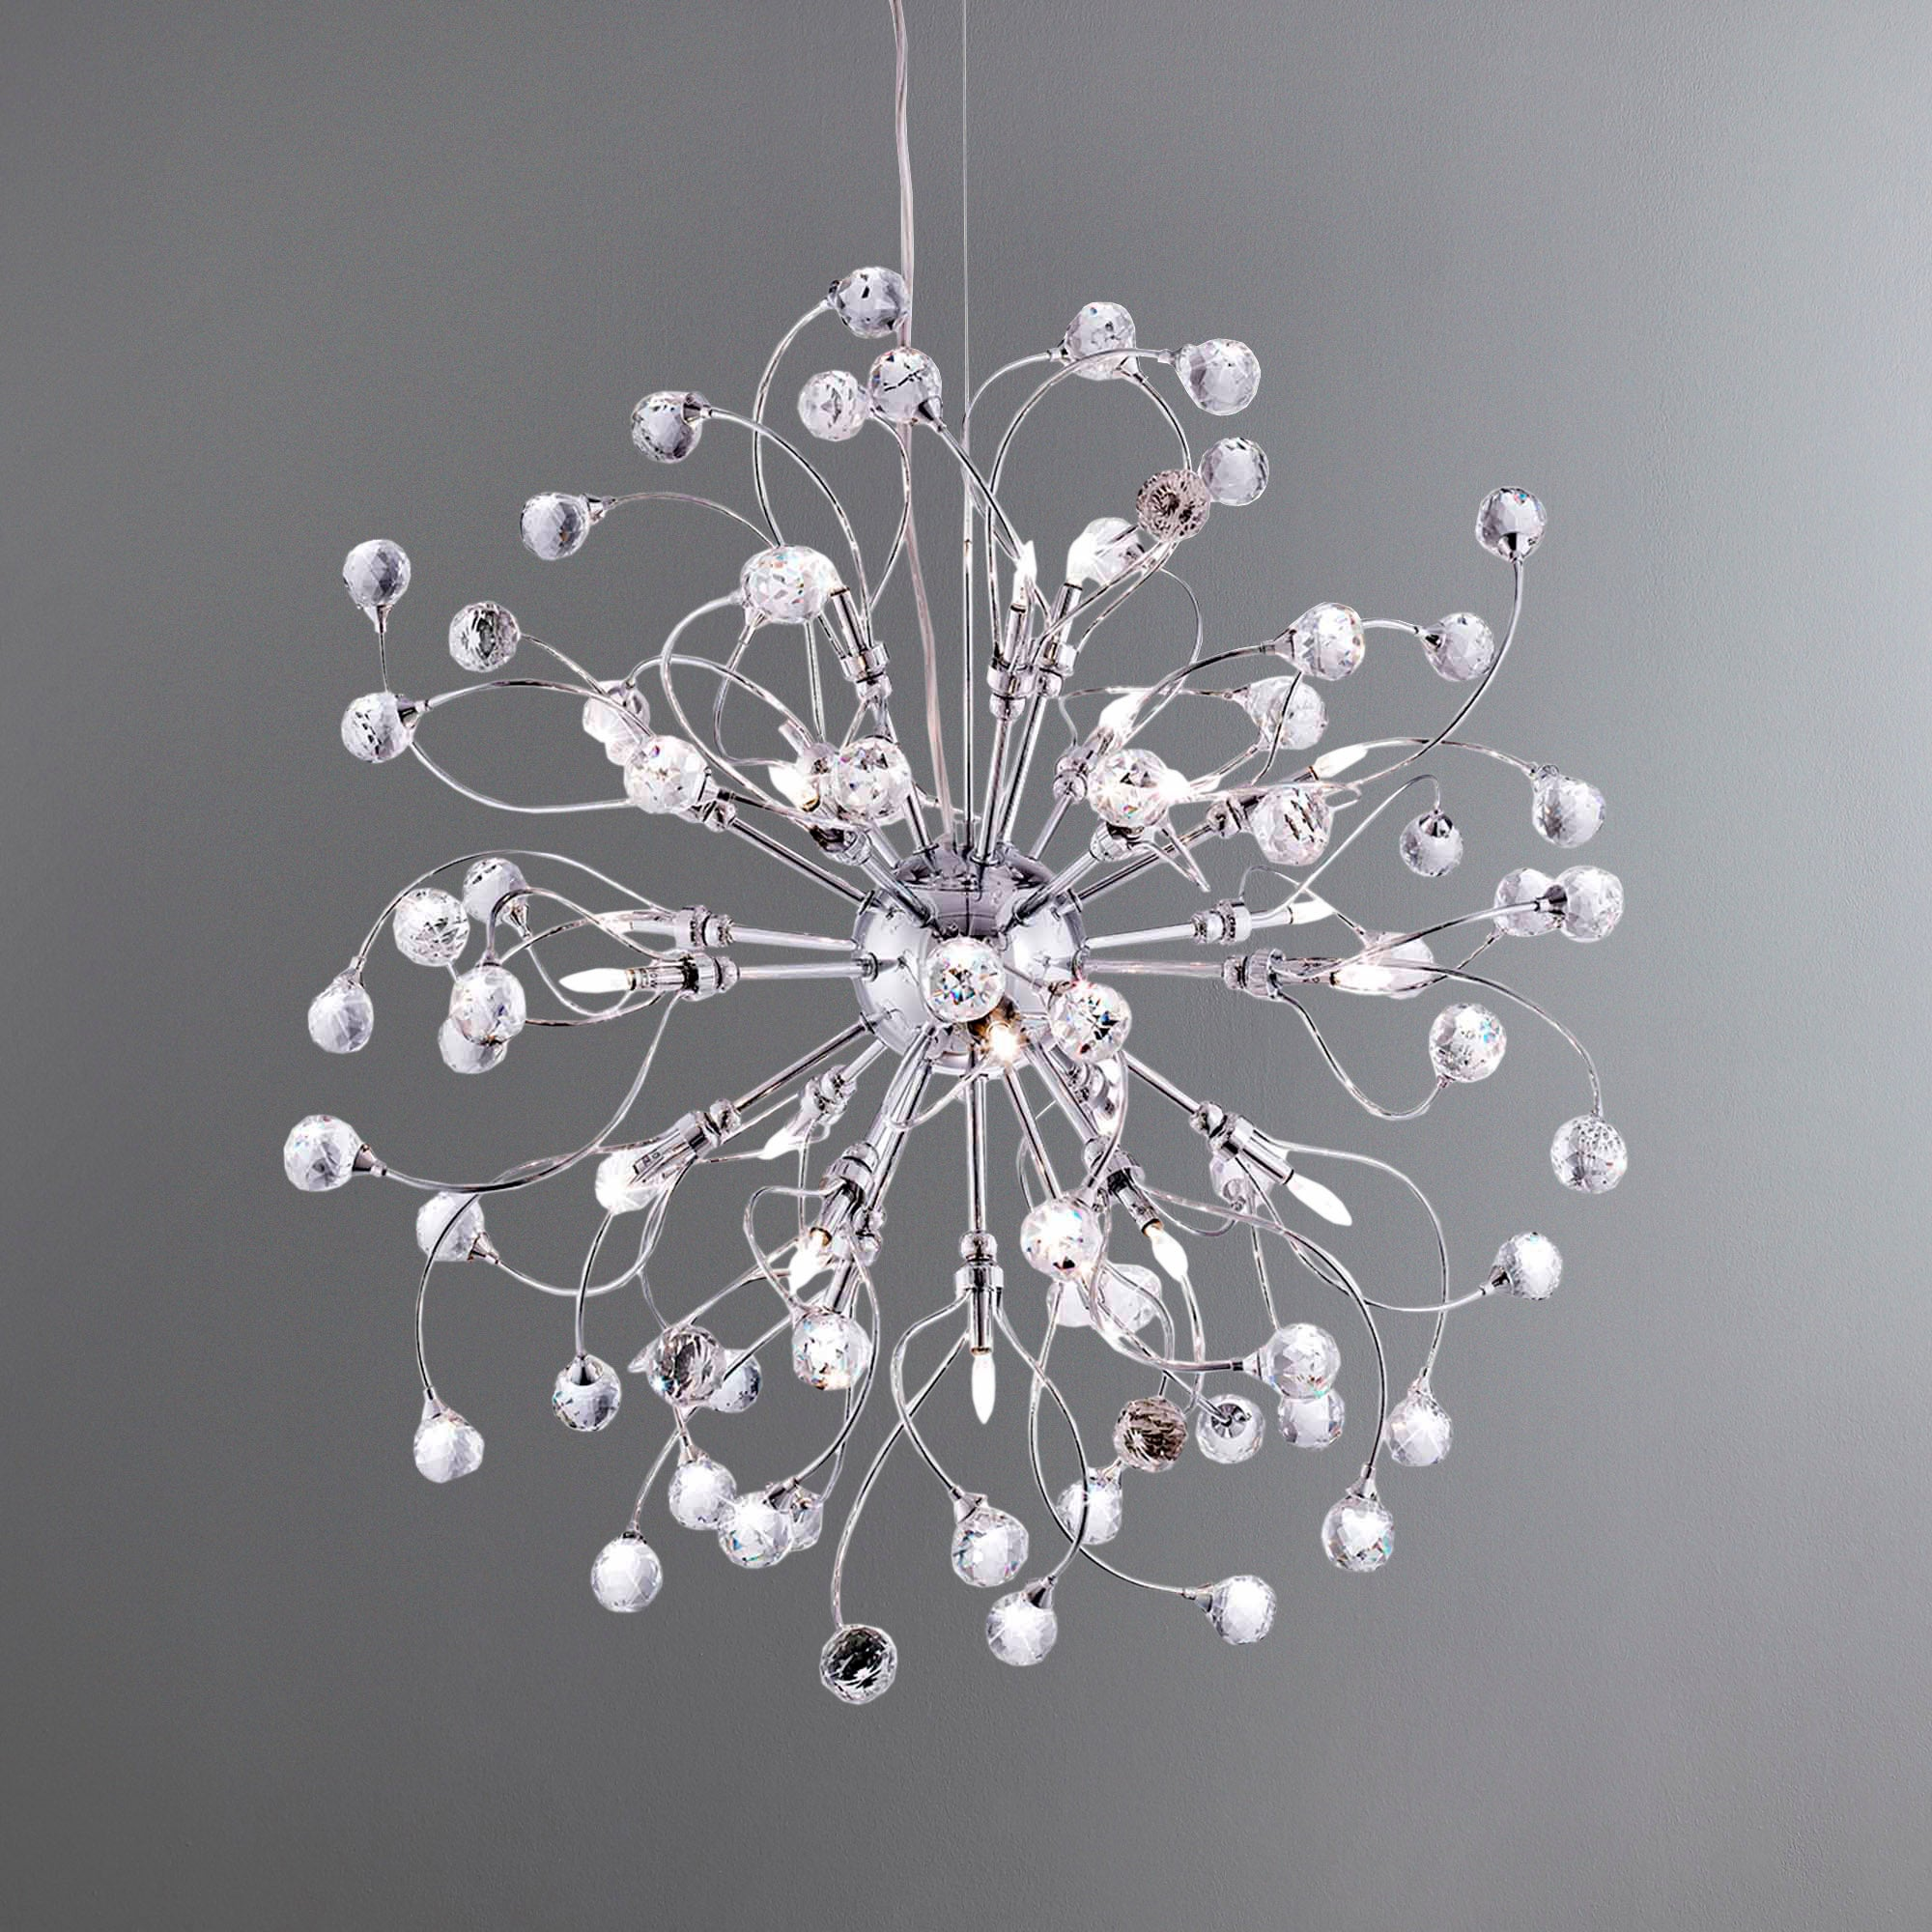 24 Light Ceiling Fitting Silver